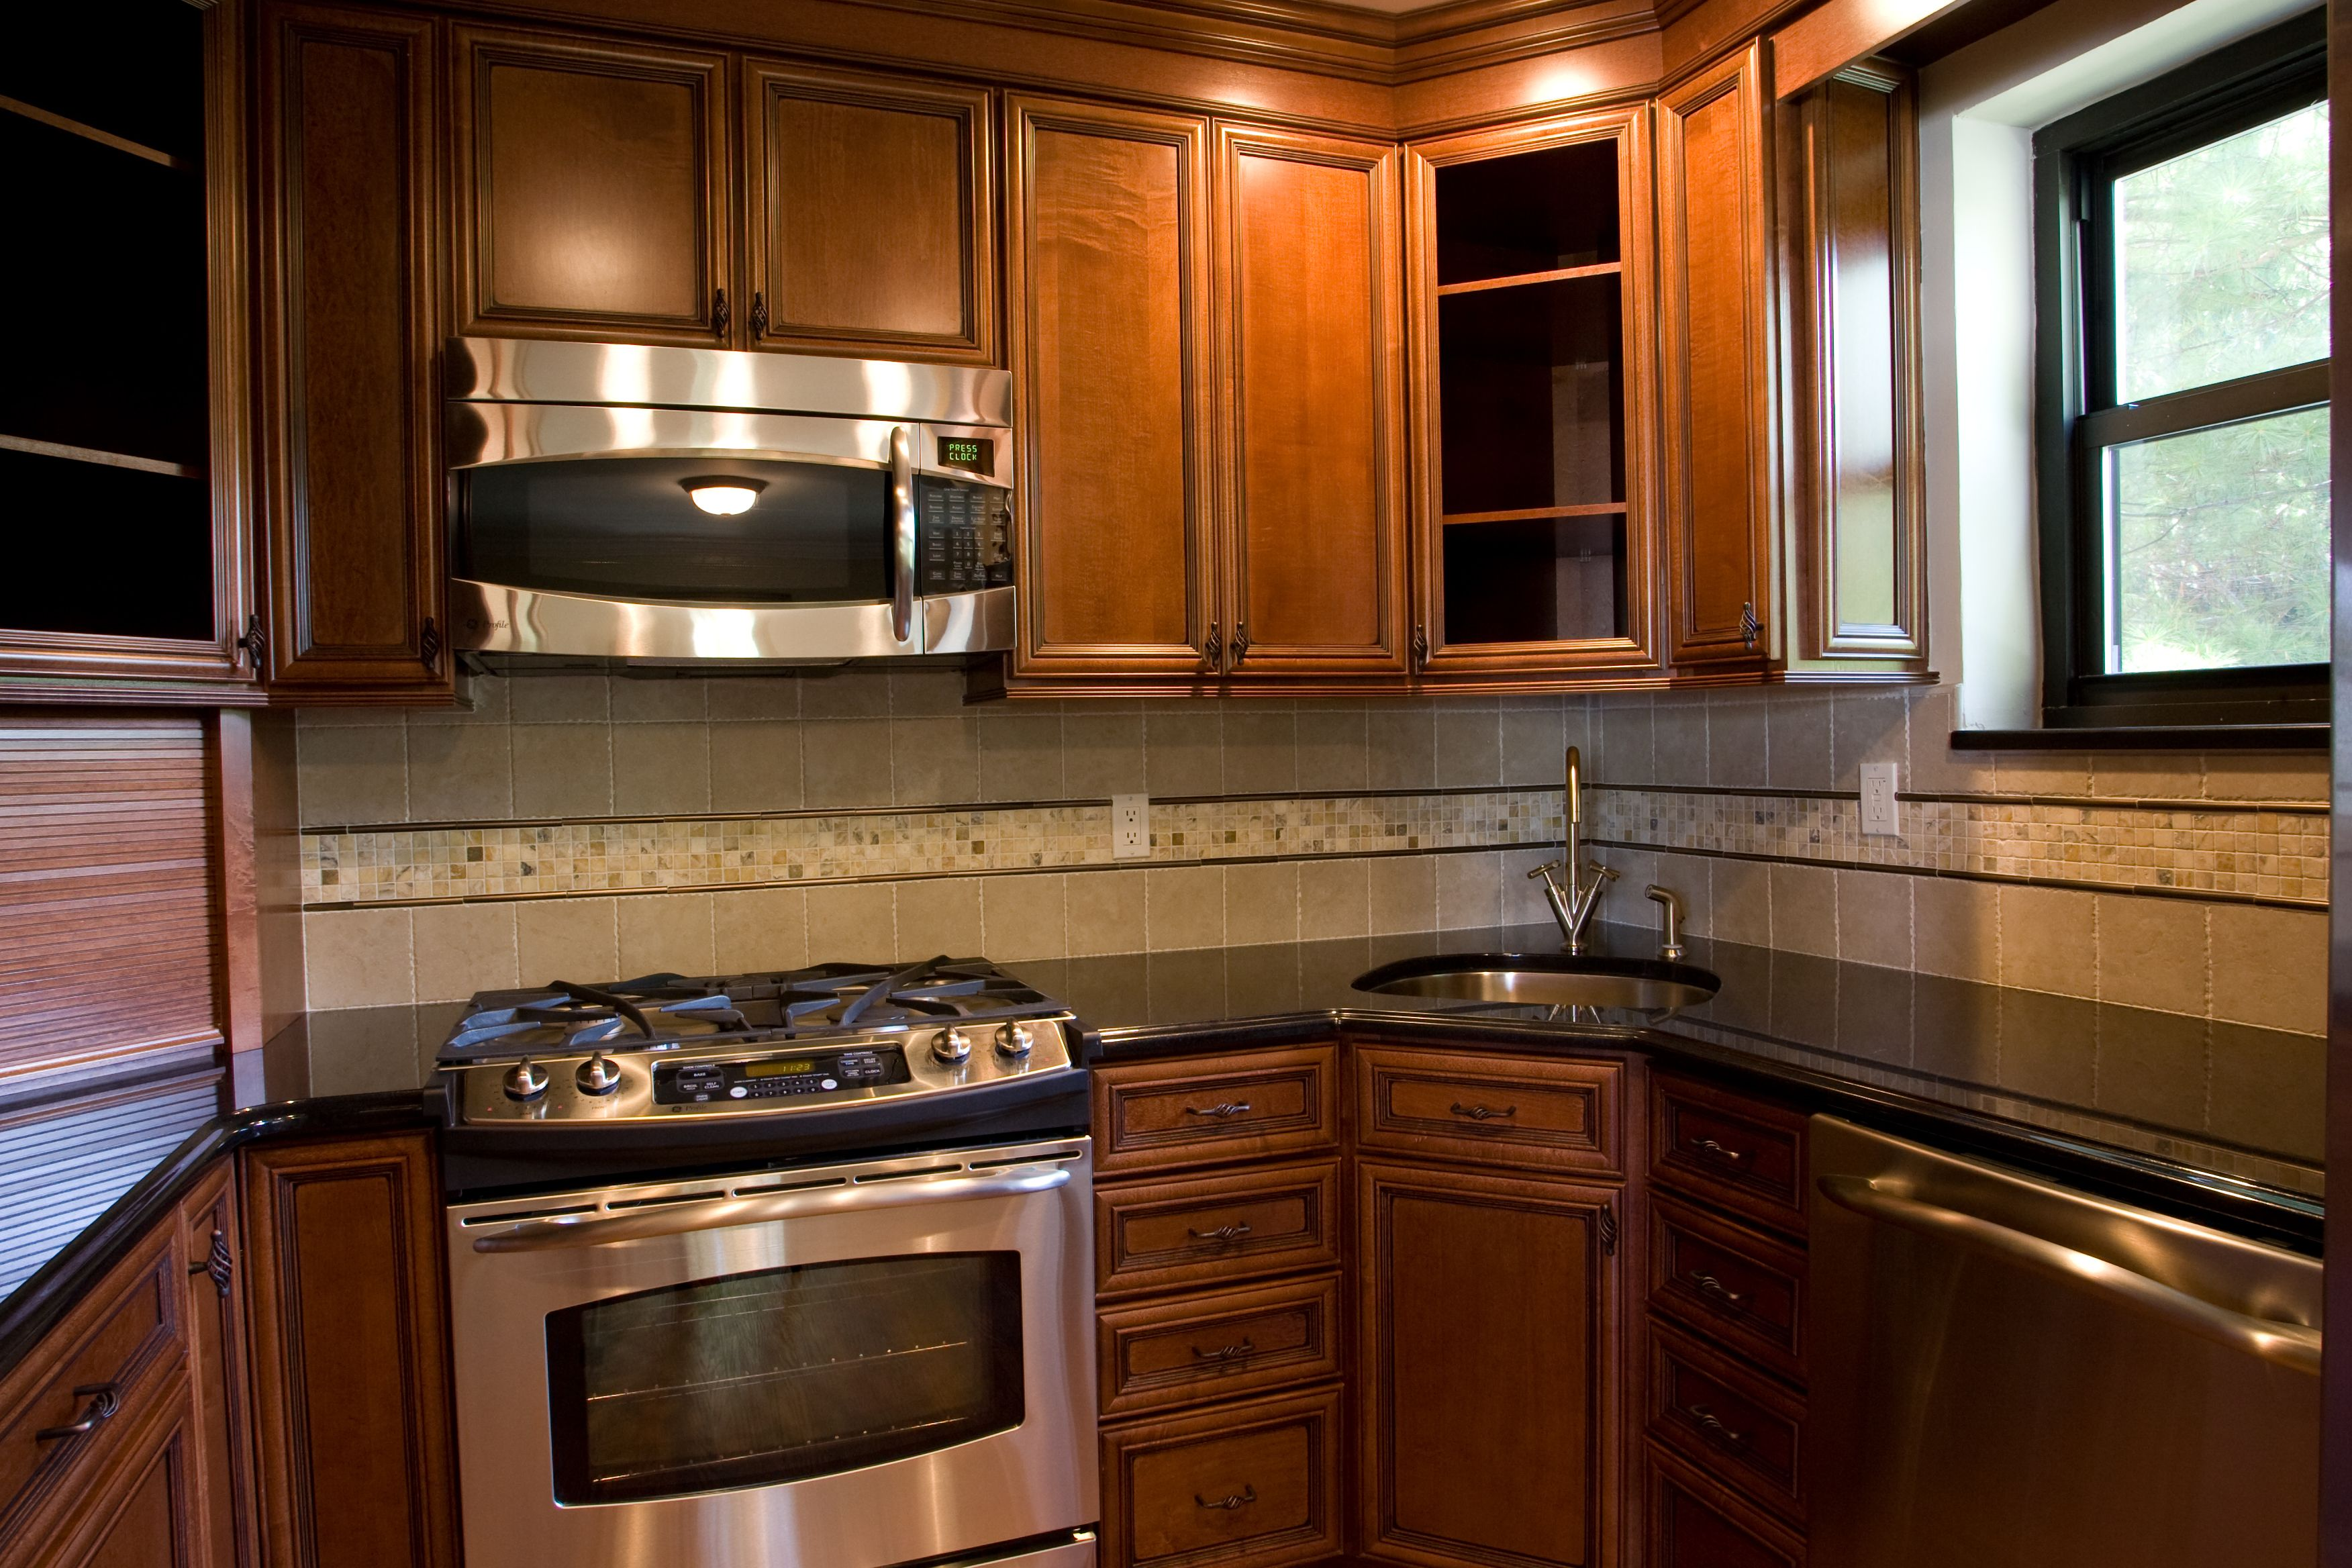 Kitchen By Color Age Armstrong Cabinets Serenity Mocha